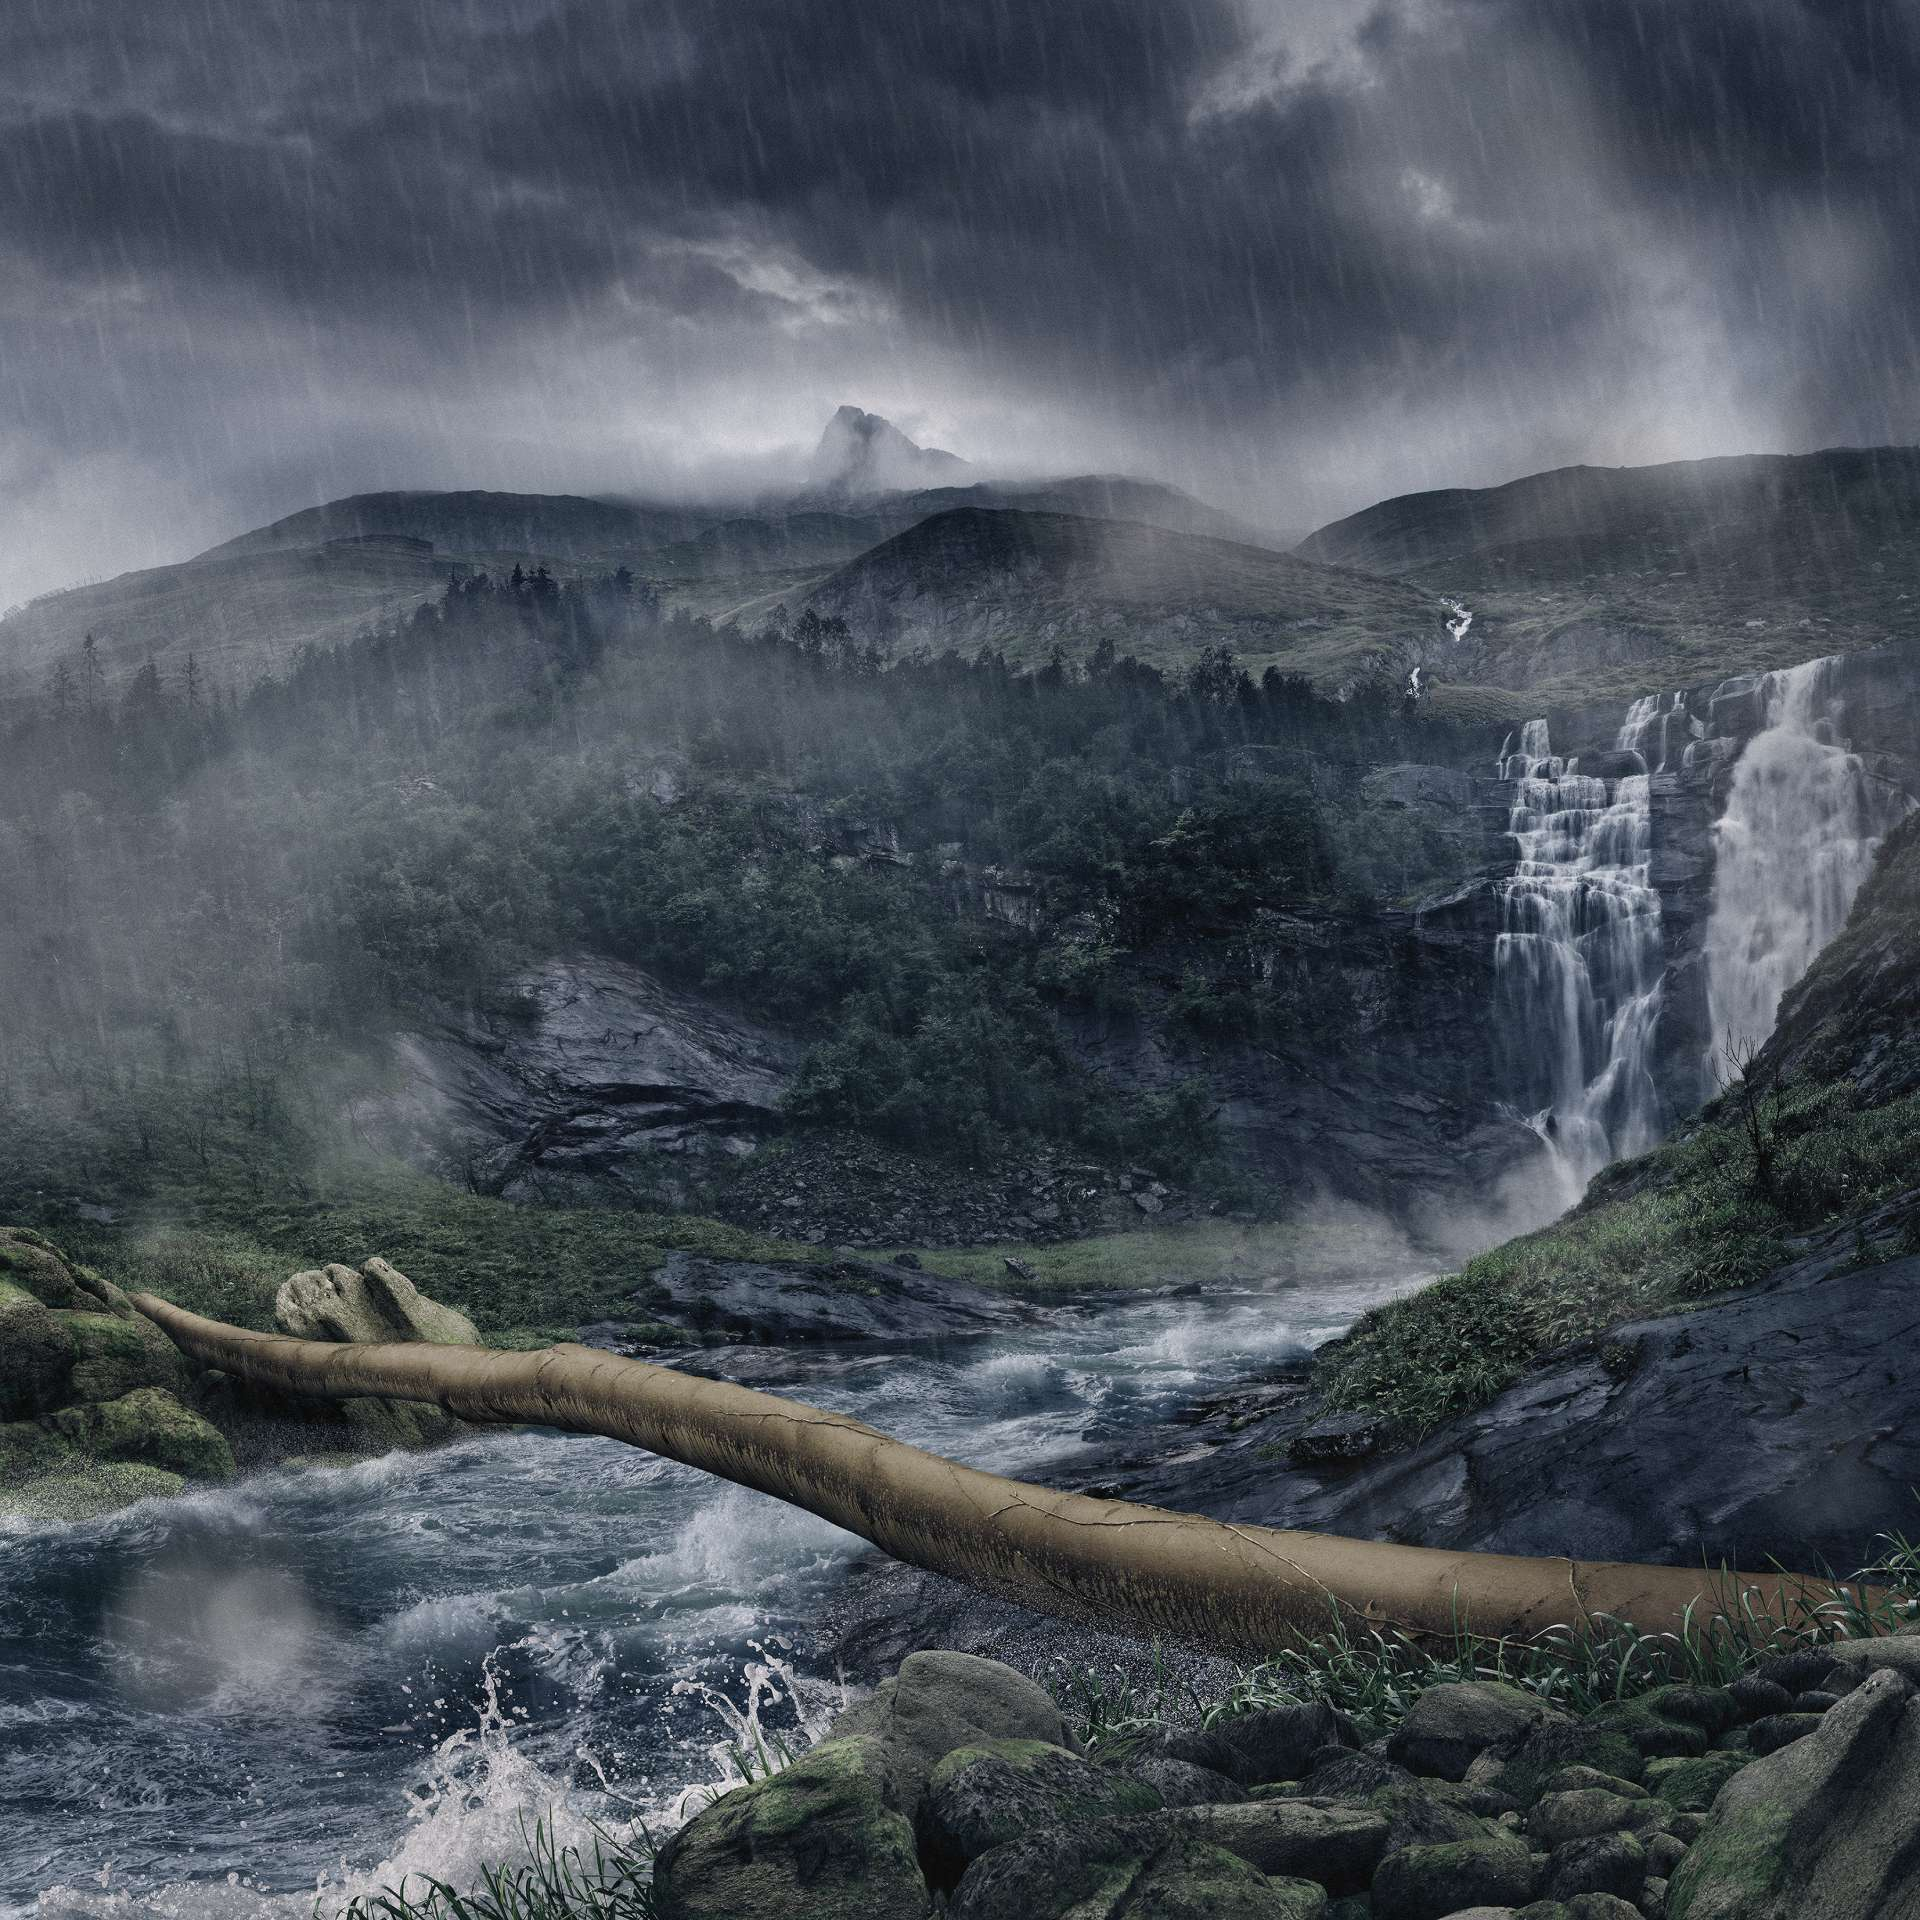 Waterfall in Norway | Landscape | Koen De Muynck